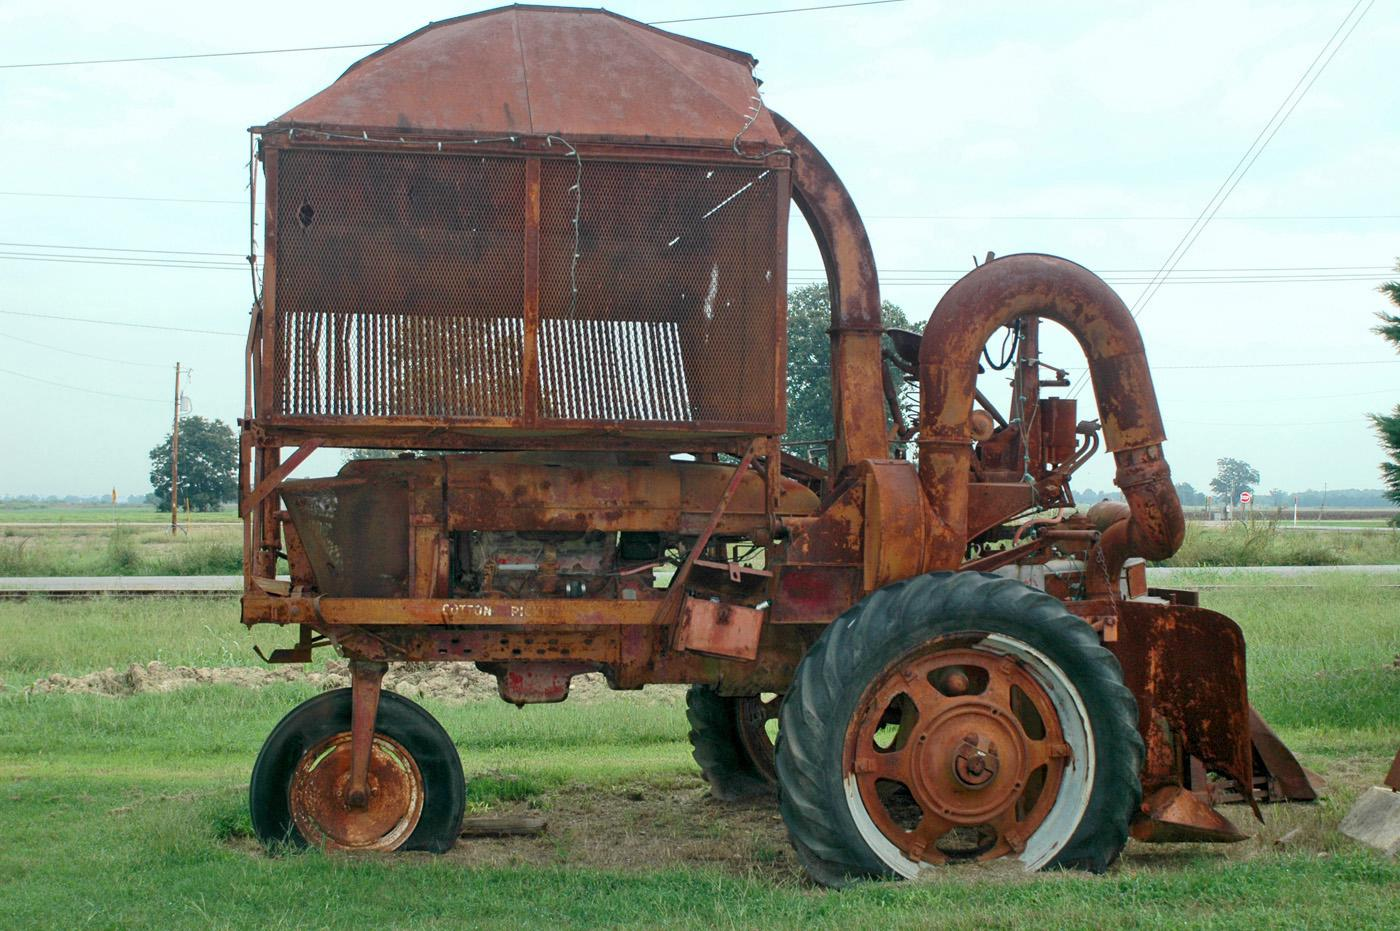 The M12H harvester at the Hobson Plantation was produced in the late 1940s. It was among the second generation of commercially successful cotton pickers to hit the market. Hopson Plantation was the site of field tests for mechanical pickers from the 1920s through the 1940s. (Photo by Bob Ratliff)